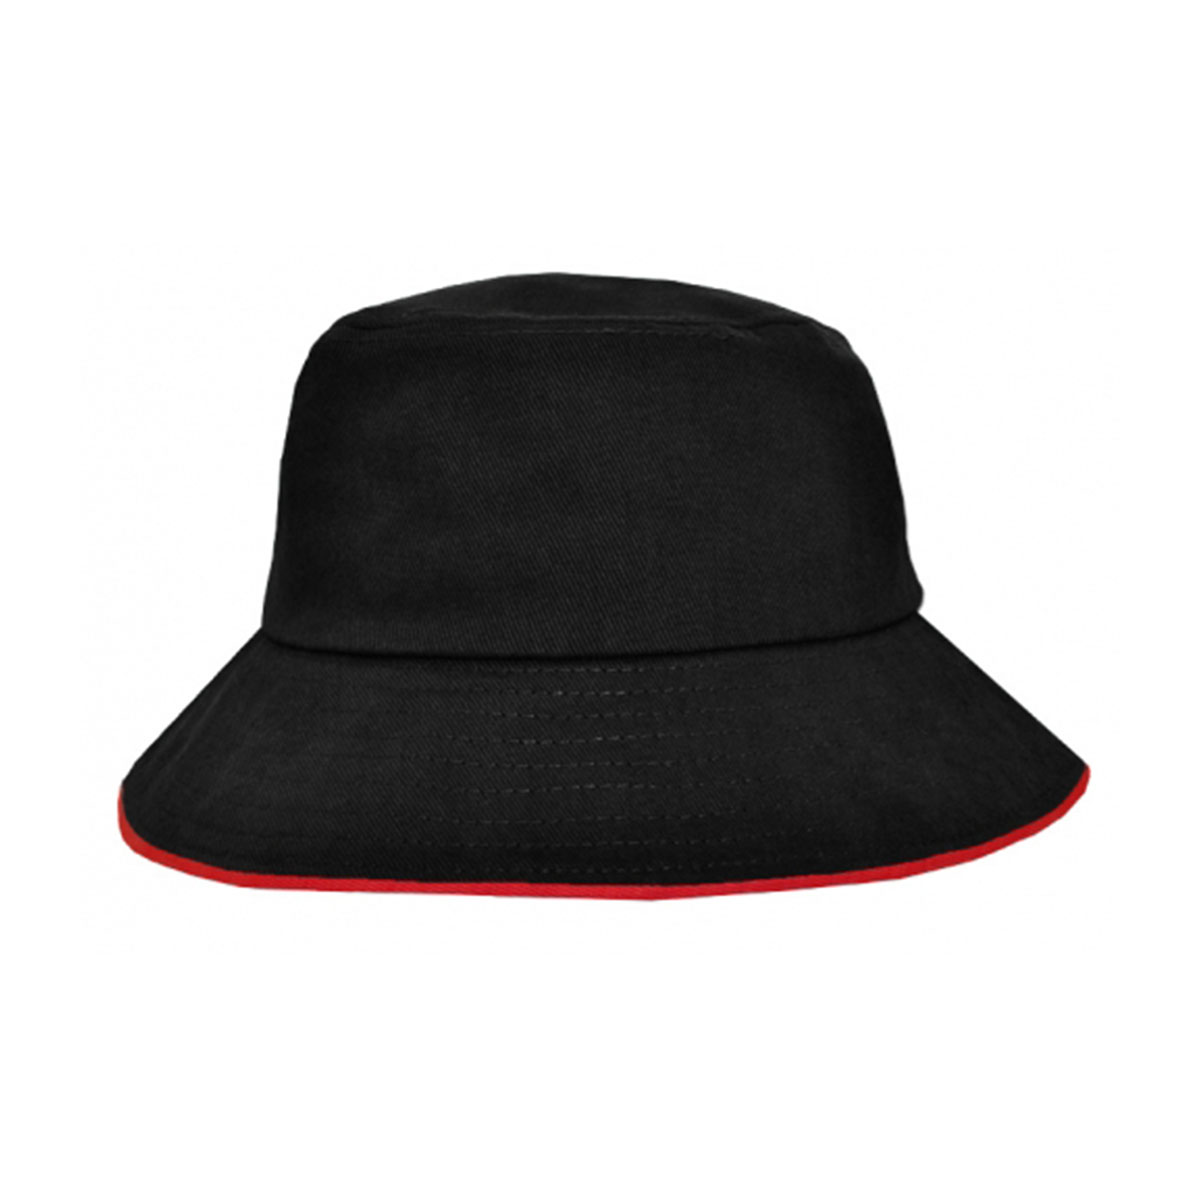 Bucket Hat Sandwich Design-Black / Red